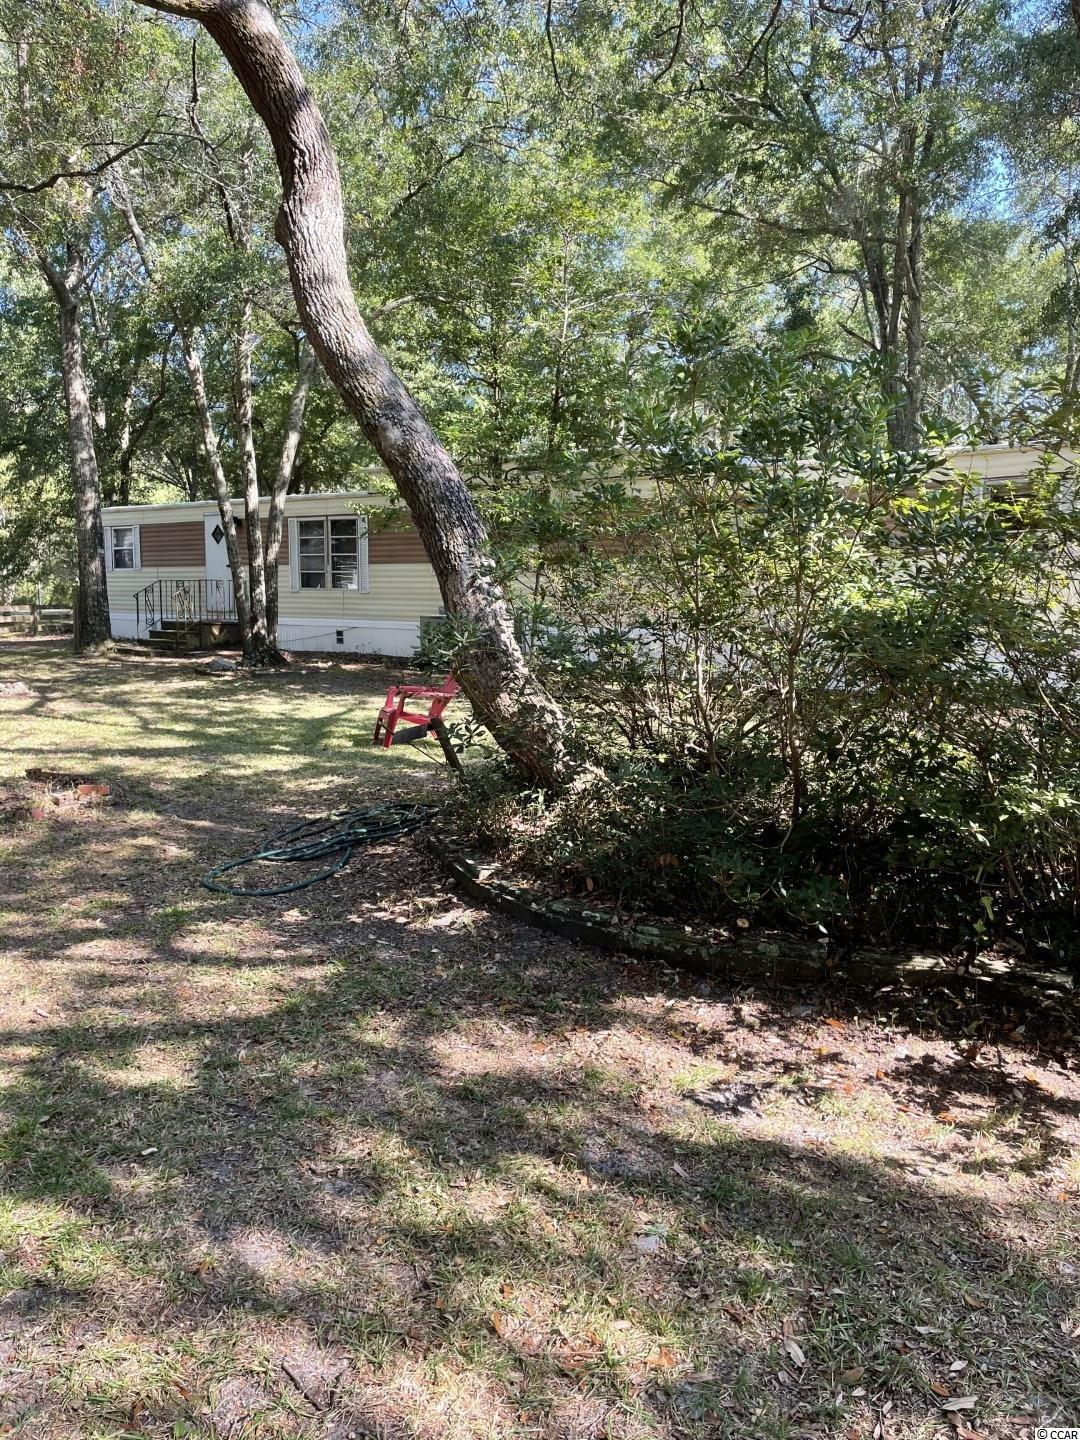 Located in Murrells Inlet on approximately 1/2 acre lot at the corner of Pee Dee Lane and LuLu Loop. Beautiful live Oaks on the property. Convenient to Murrells Inlet Marshwalk, Boat landing for the Inlet and the ICW, Brookgreen Gardens, Huntington Beach state park,.......Wonderful setting! Square footage is approximate and not guaranteed. Buyers responsible for verification.